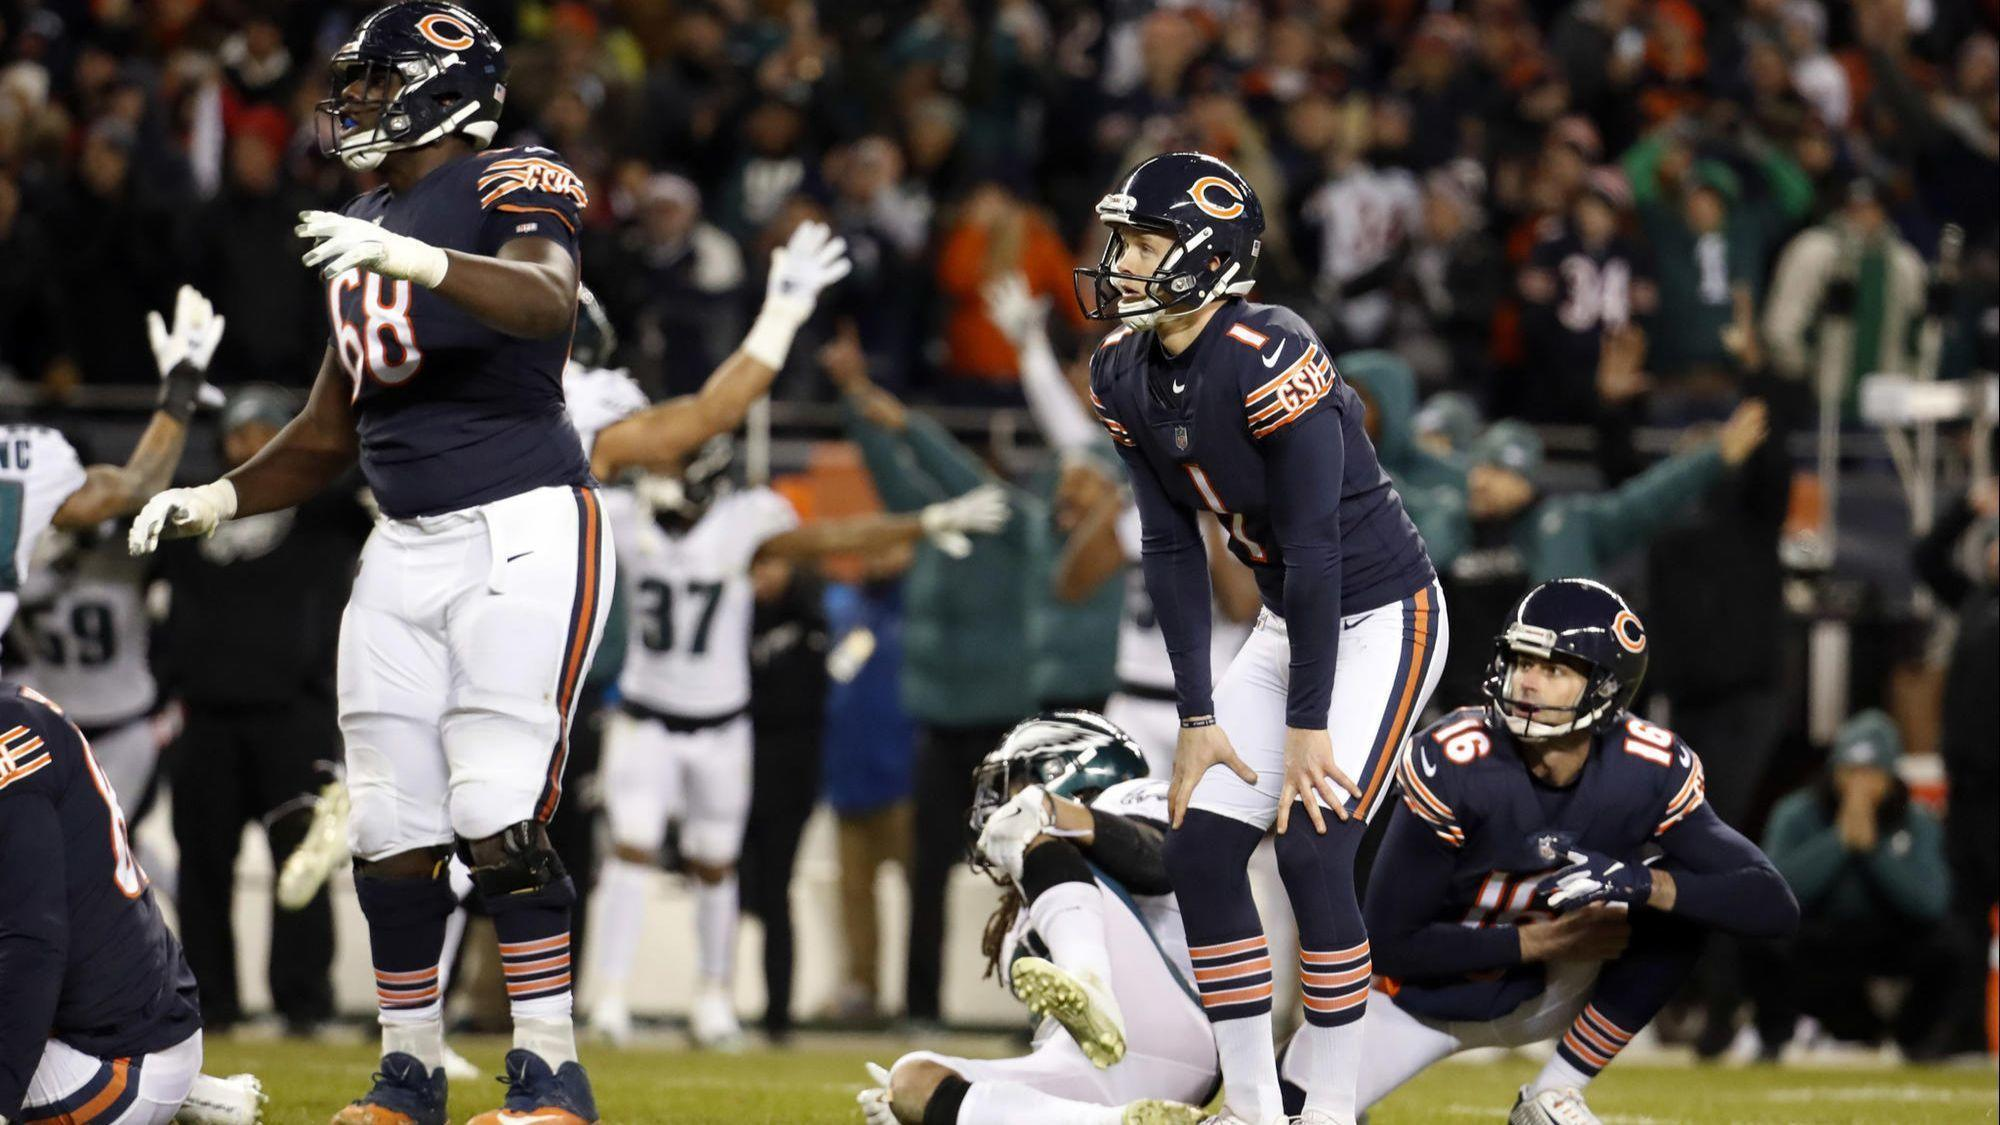 64be5b9aabe Just like that, an unbelievable and crushing climax ends the Bears' special  season